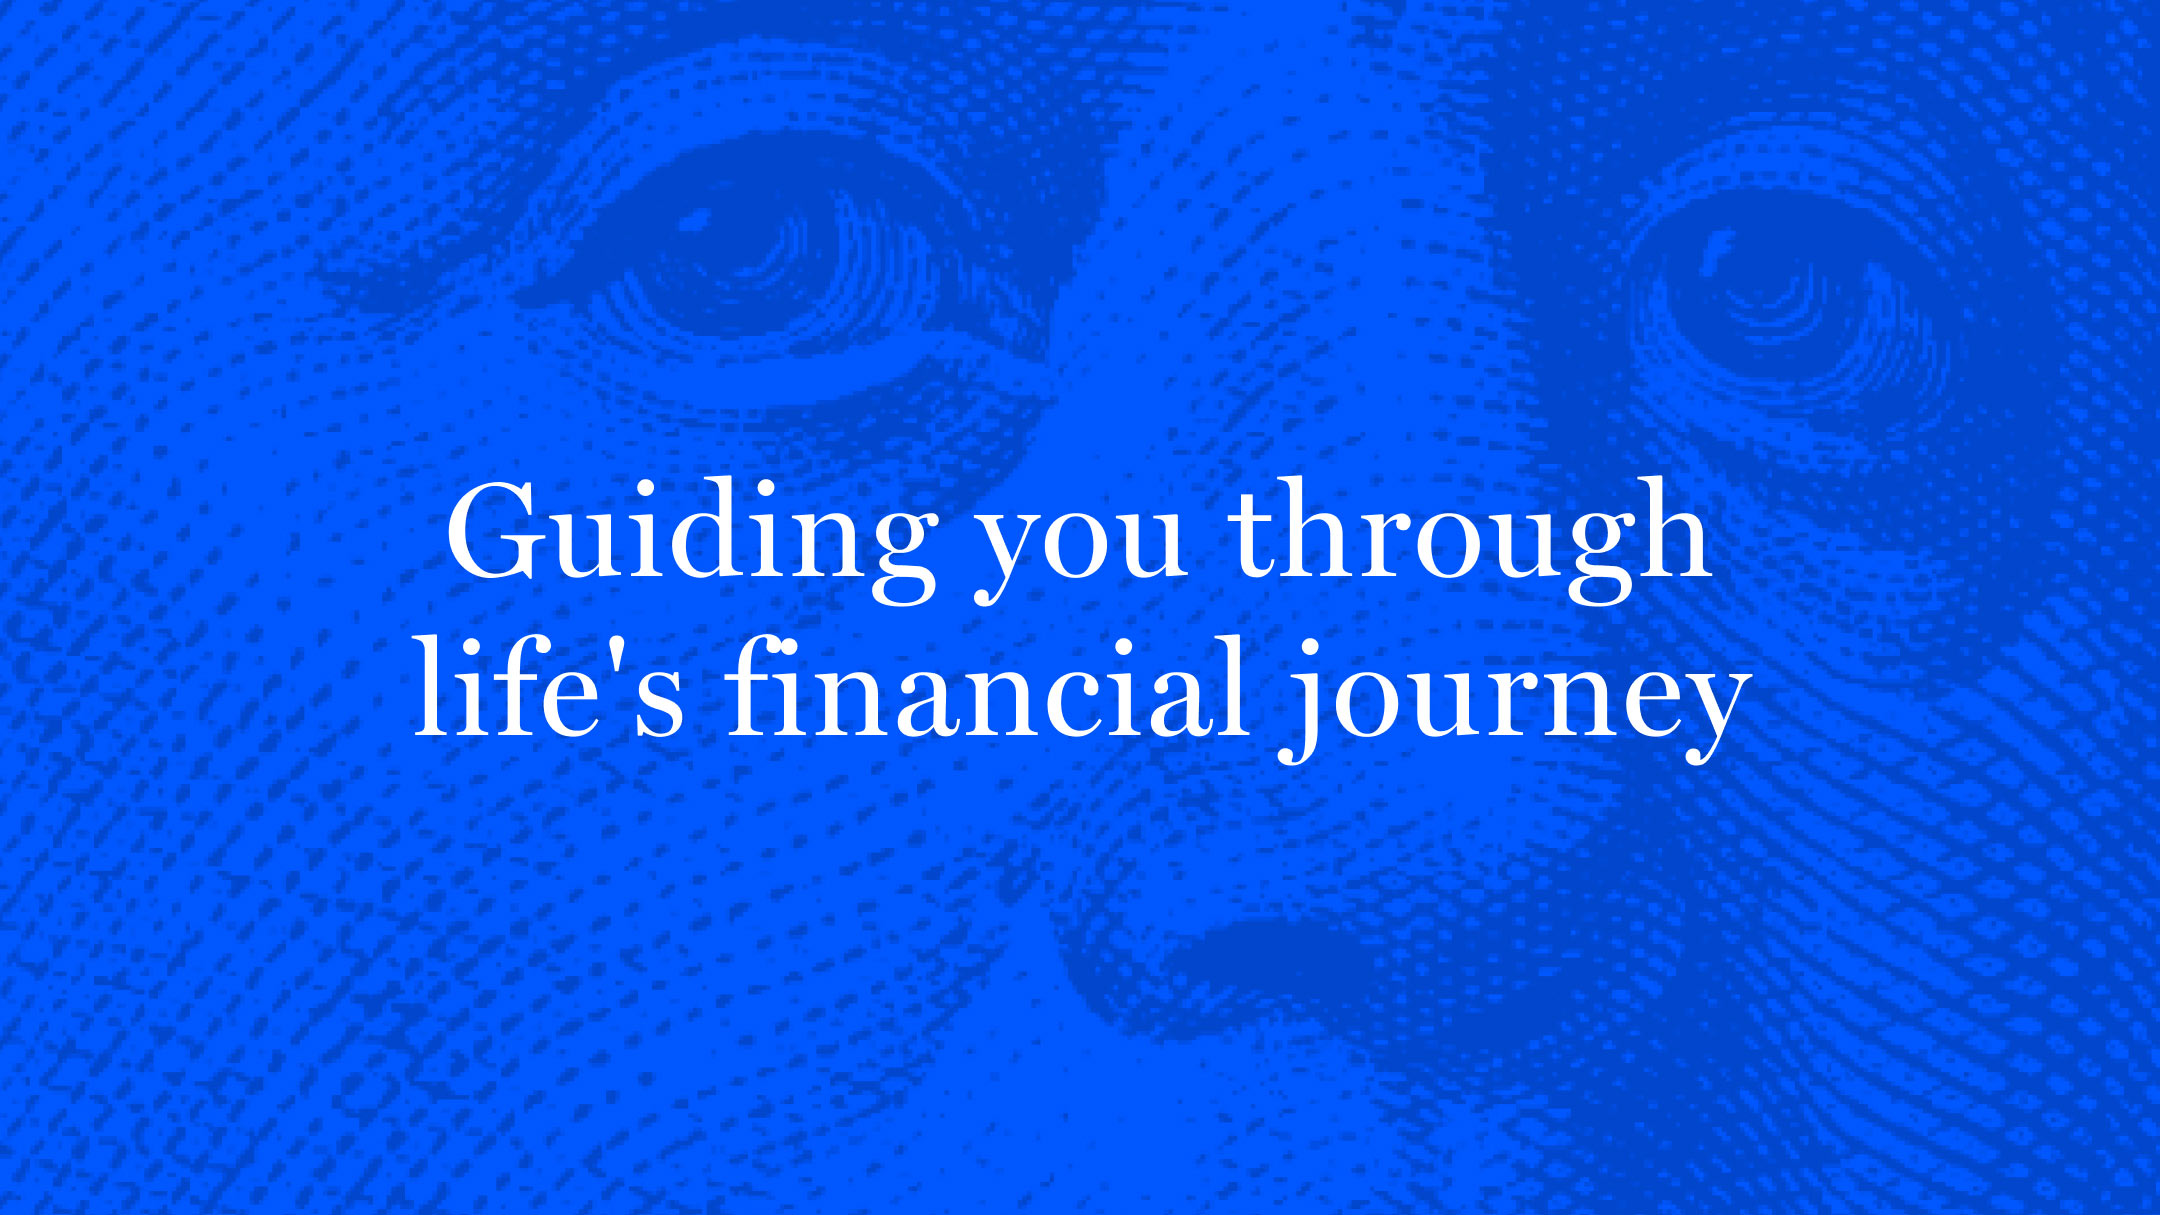 """Bankrate's main tagline, """"Guiding you through life's financial journey"""" with a close up overlay of a Benjamin Franklin illustration."""